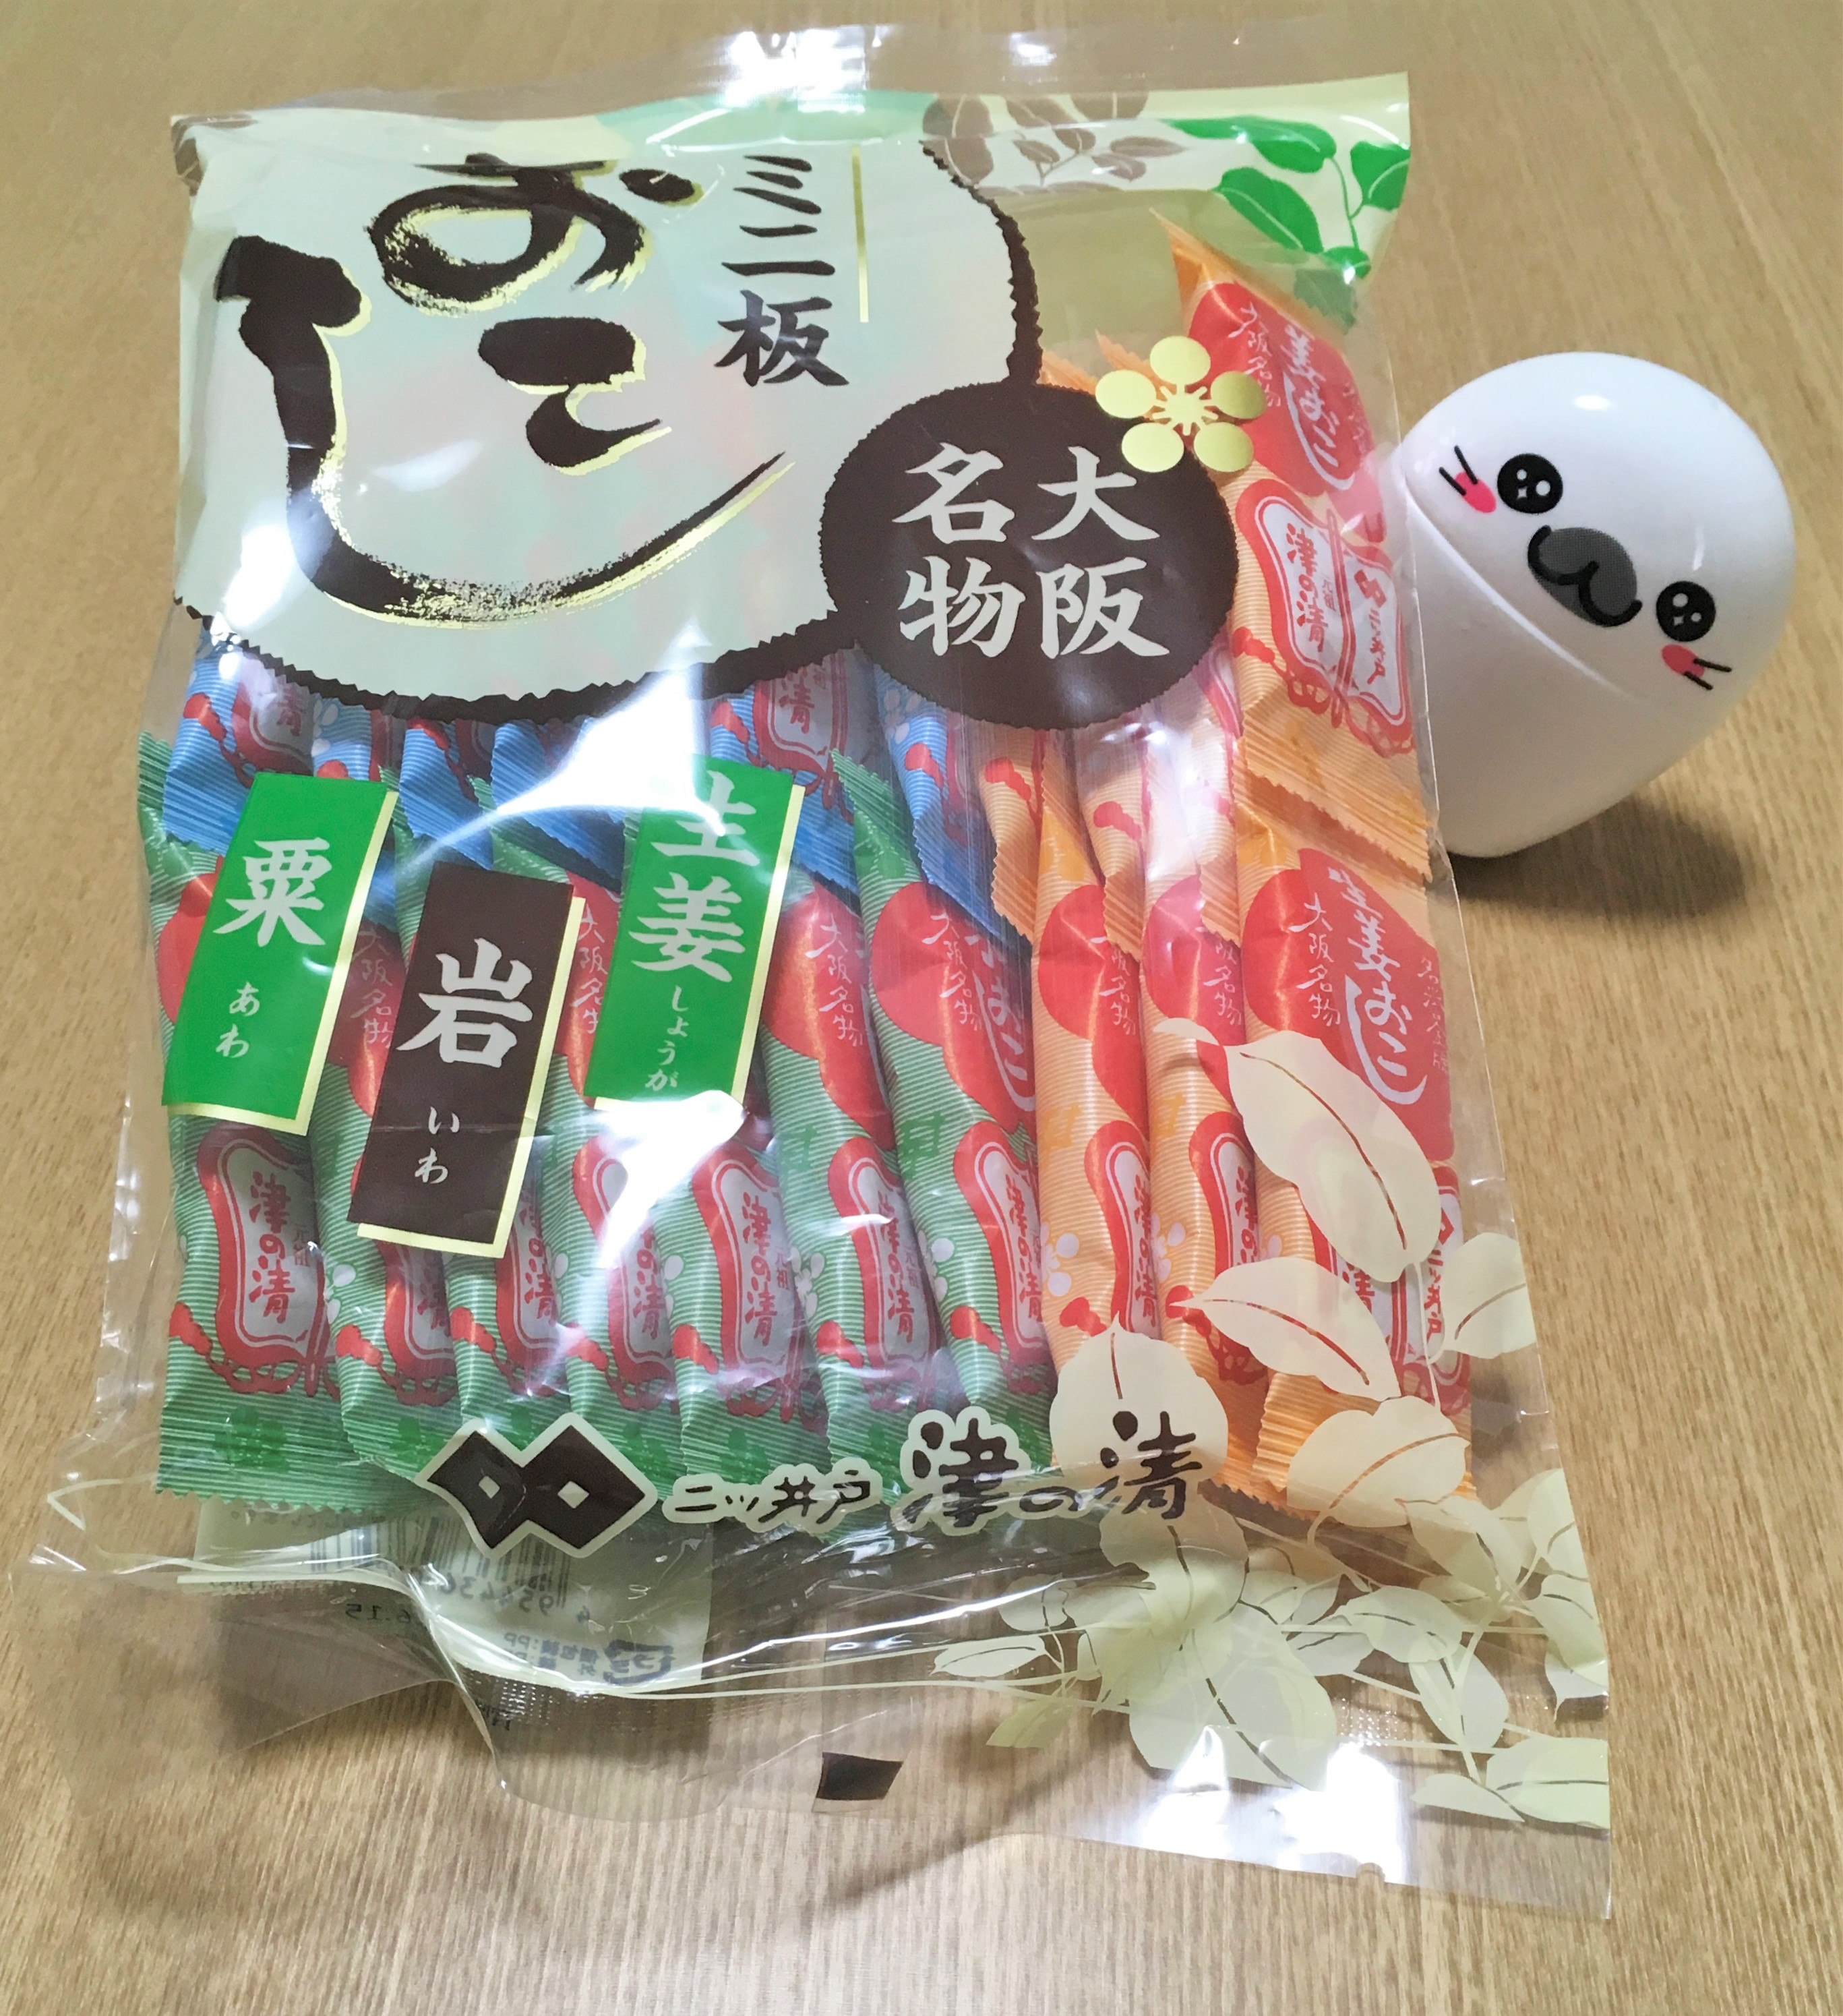 cellophane package of okoshi from Futatsuido Tsunose